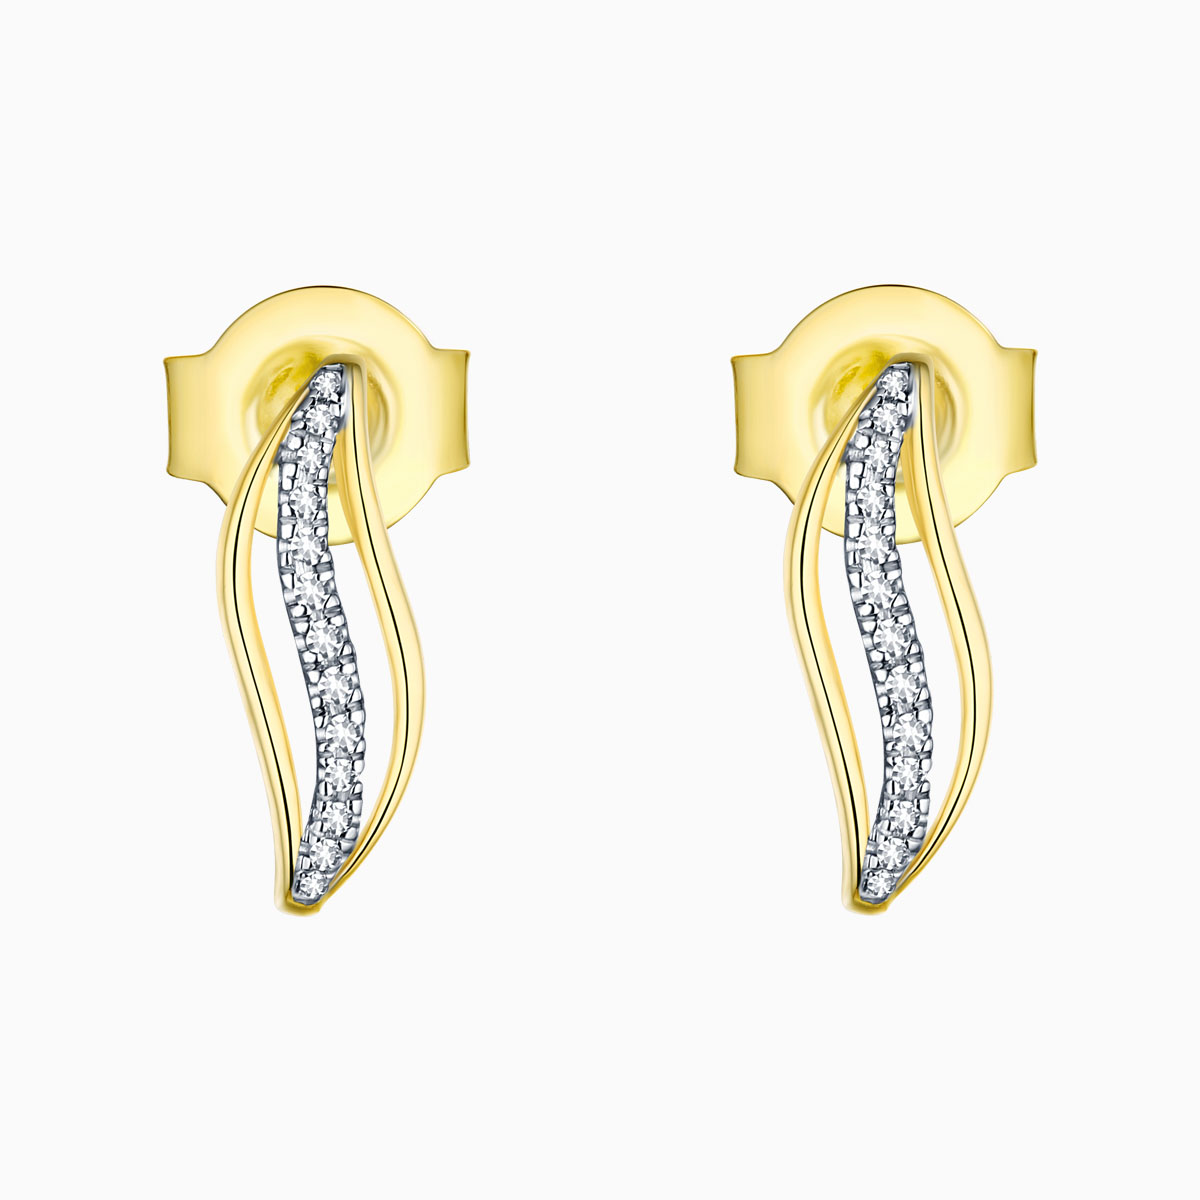 E13551WHT- 14K Yellow Gold Diamond Earrings, 0.04 TCW